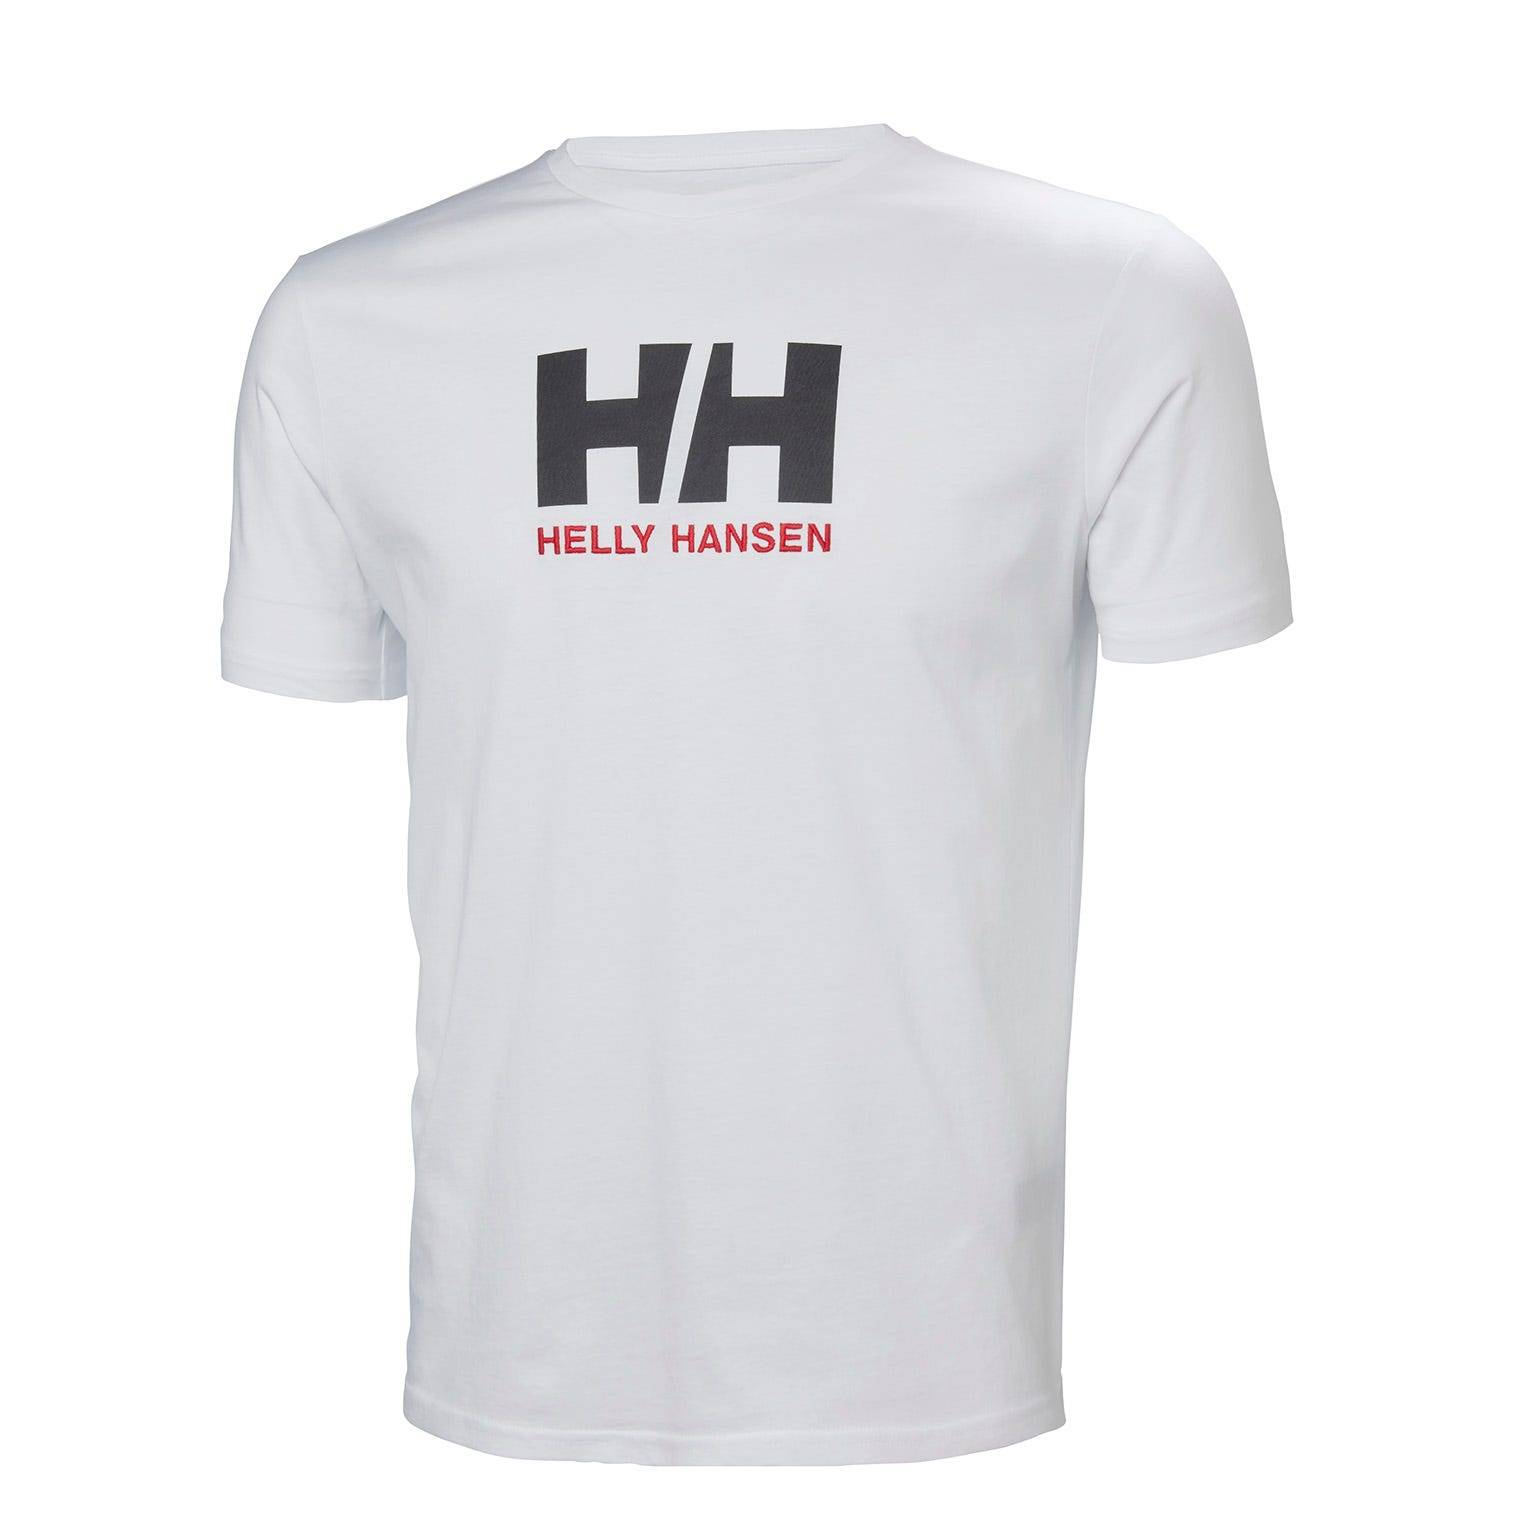 Helly Hansen Mens Logo Tshirt White S